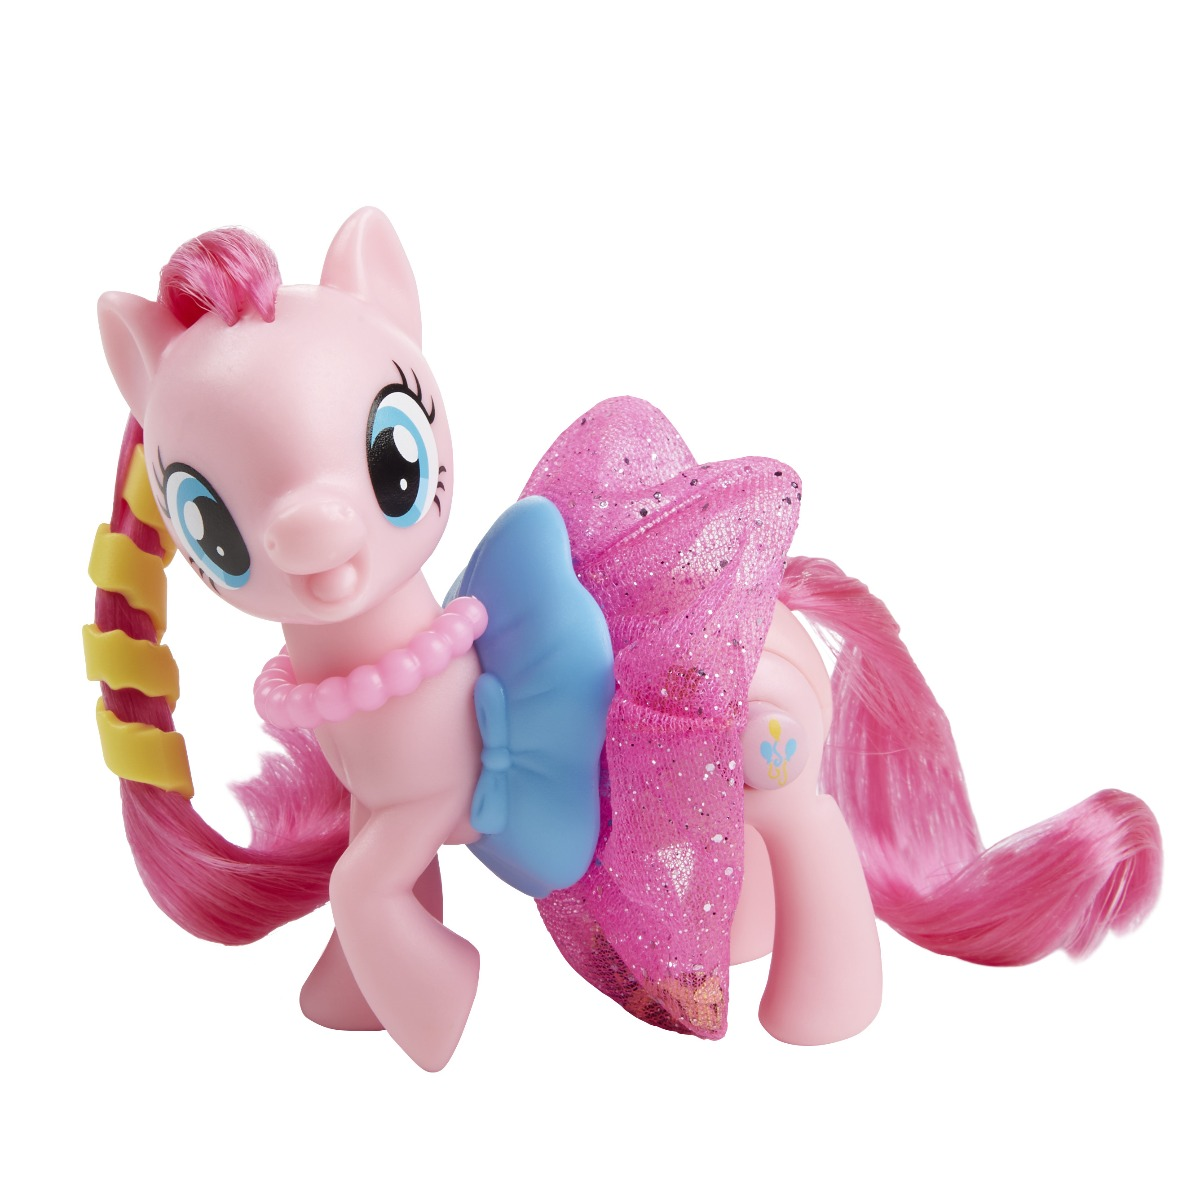 Figurina My Little Pony The Movie - Pinkie Pie cu fustita stralucitoare